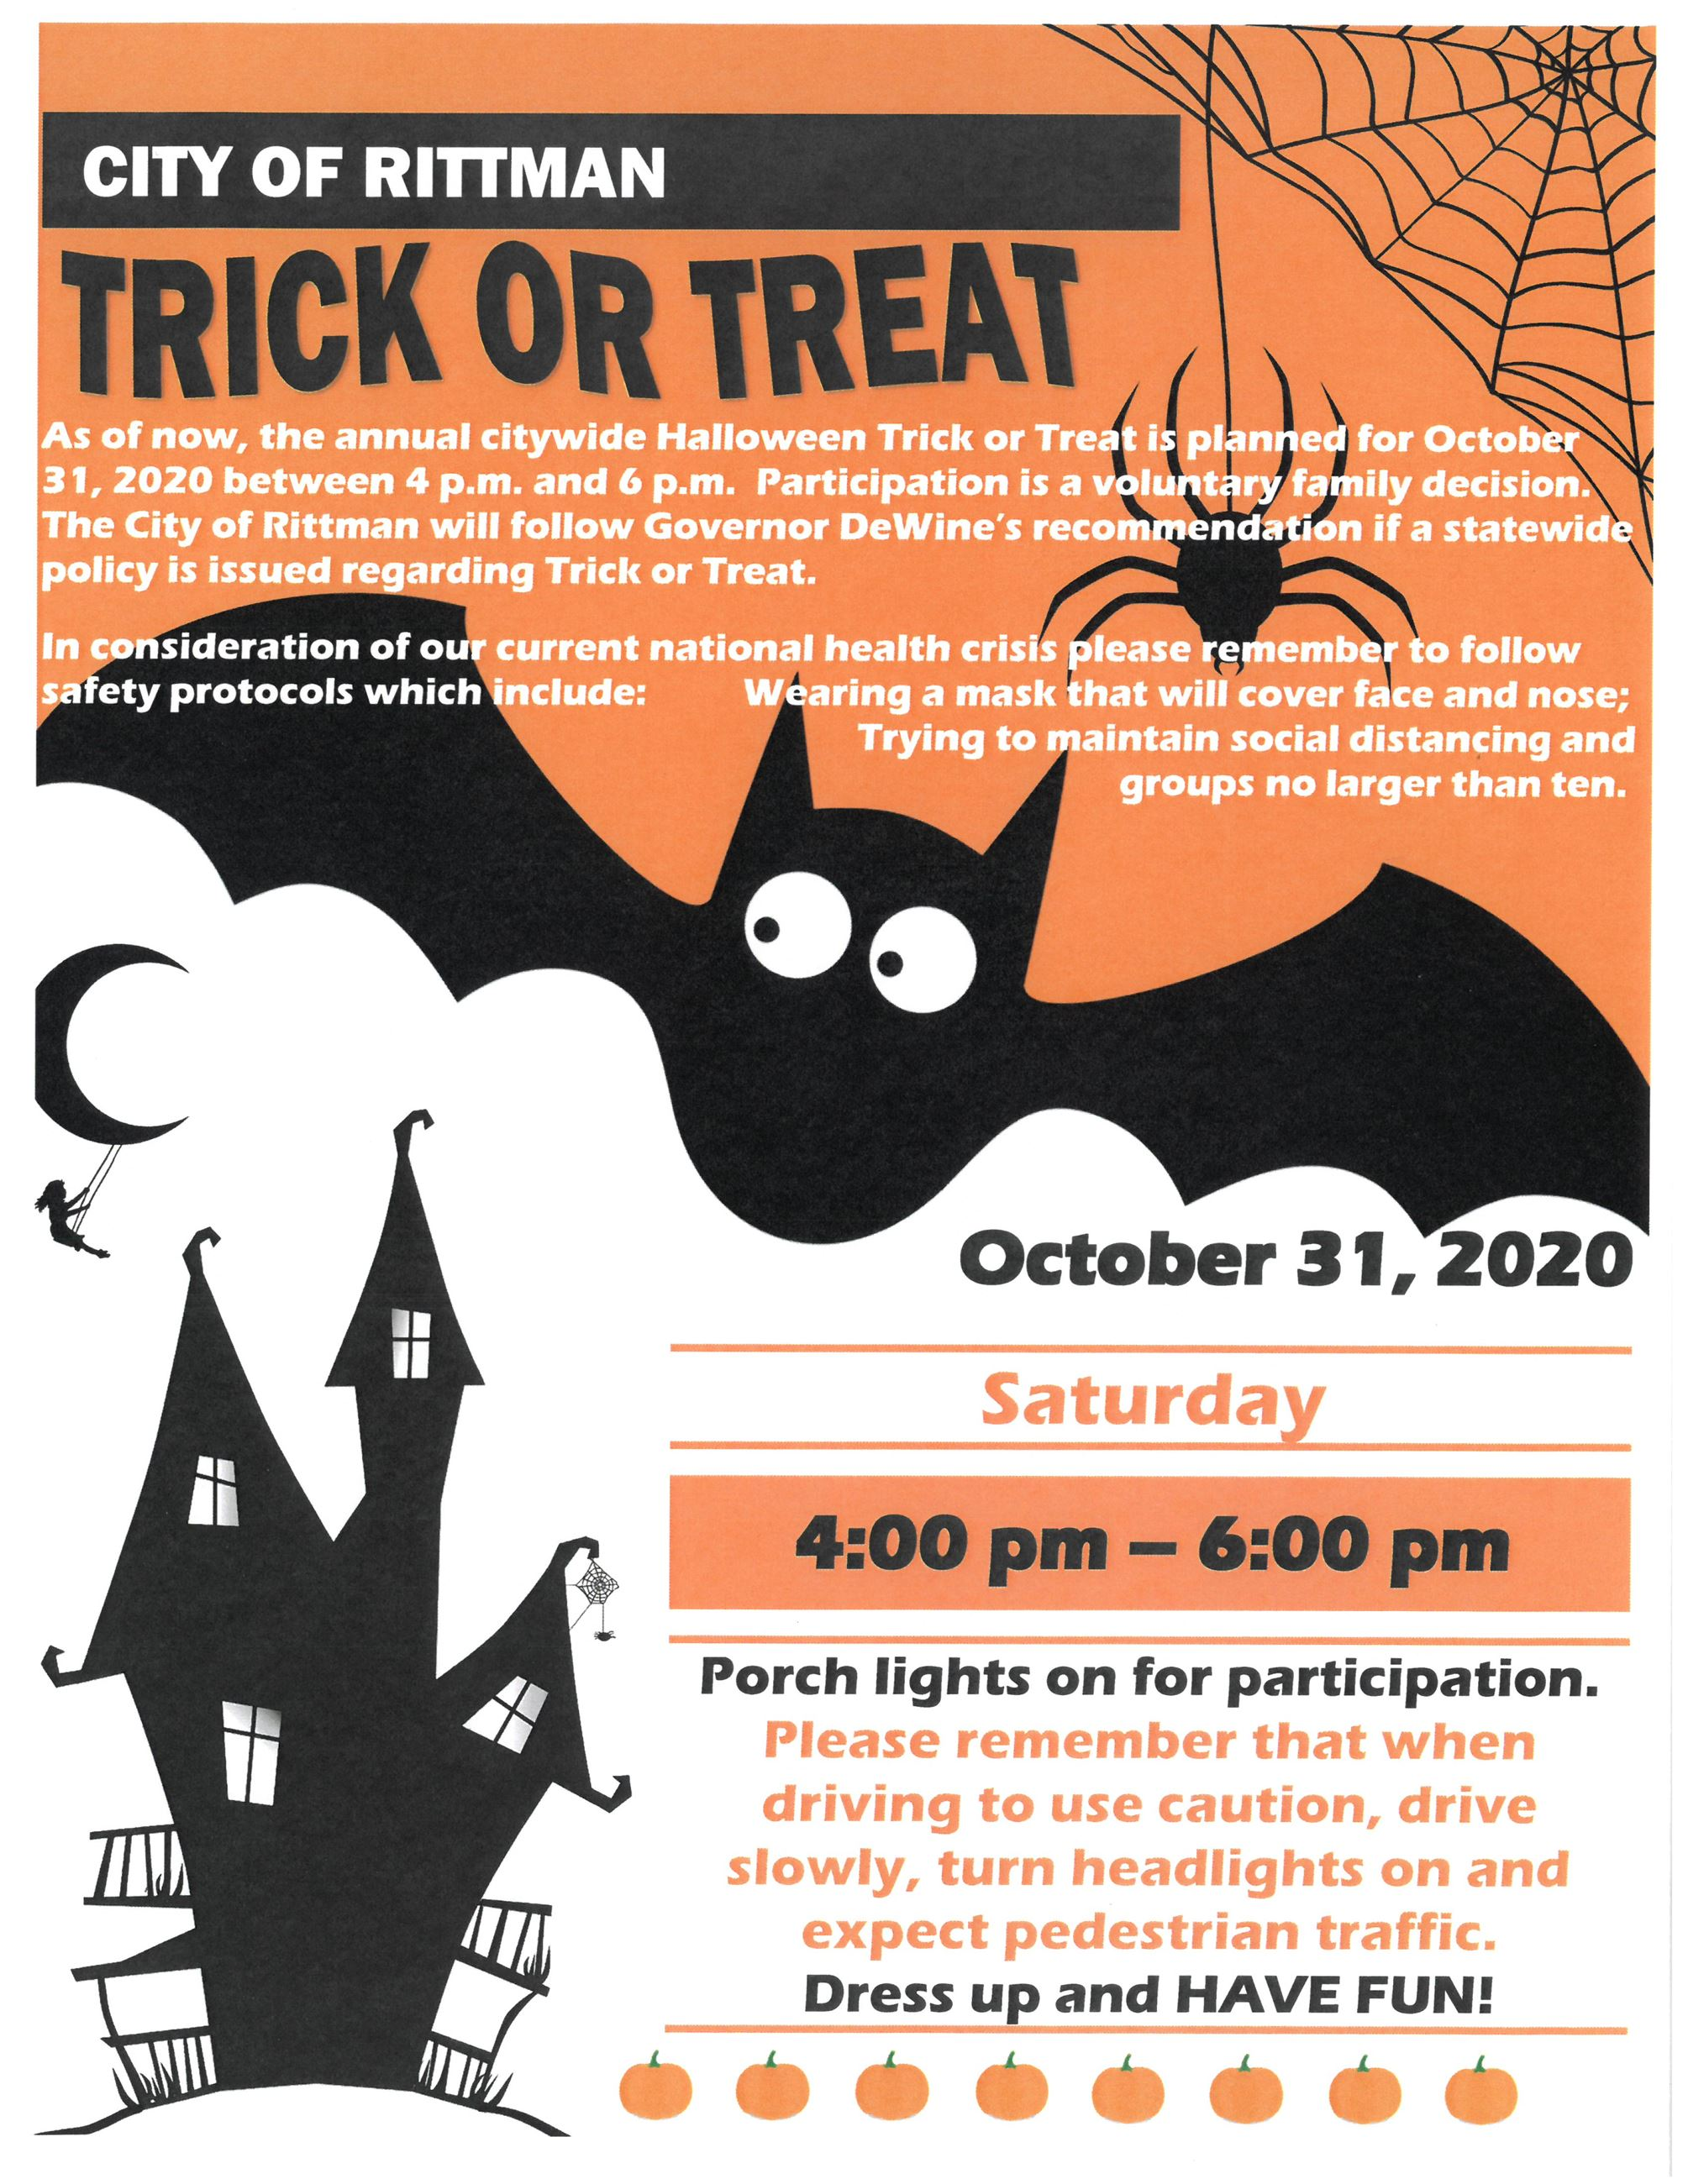 City of Rittman 2020 Trick or Treat Announcement